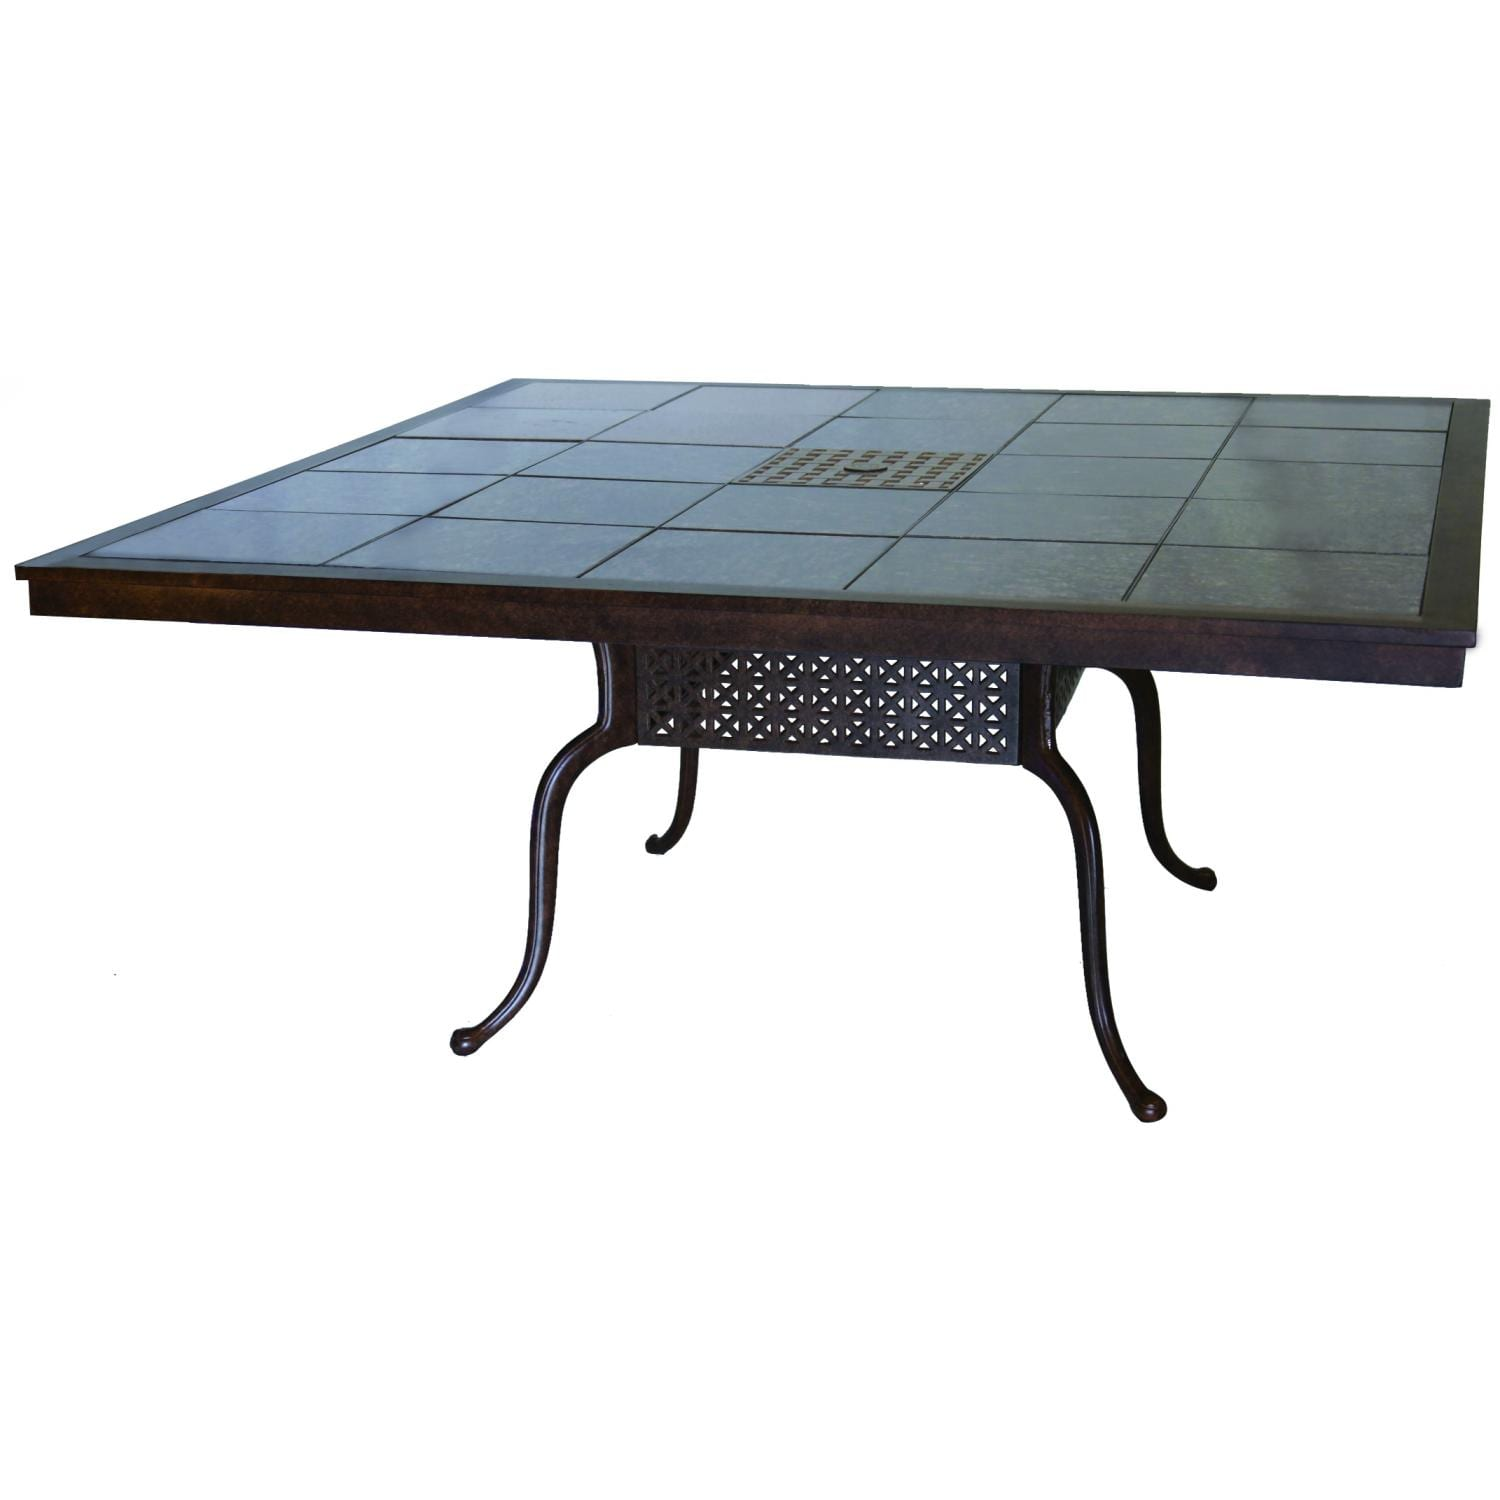 Darlee Series 77 Patio Dining Table   Mocha / Brown Granite Tile